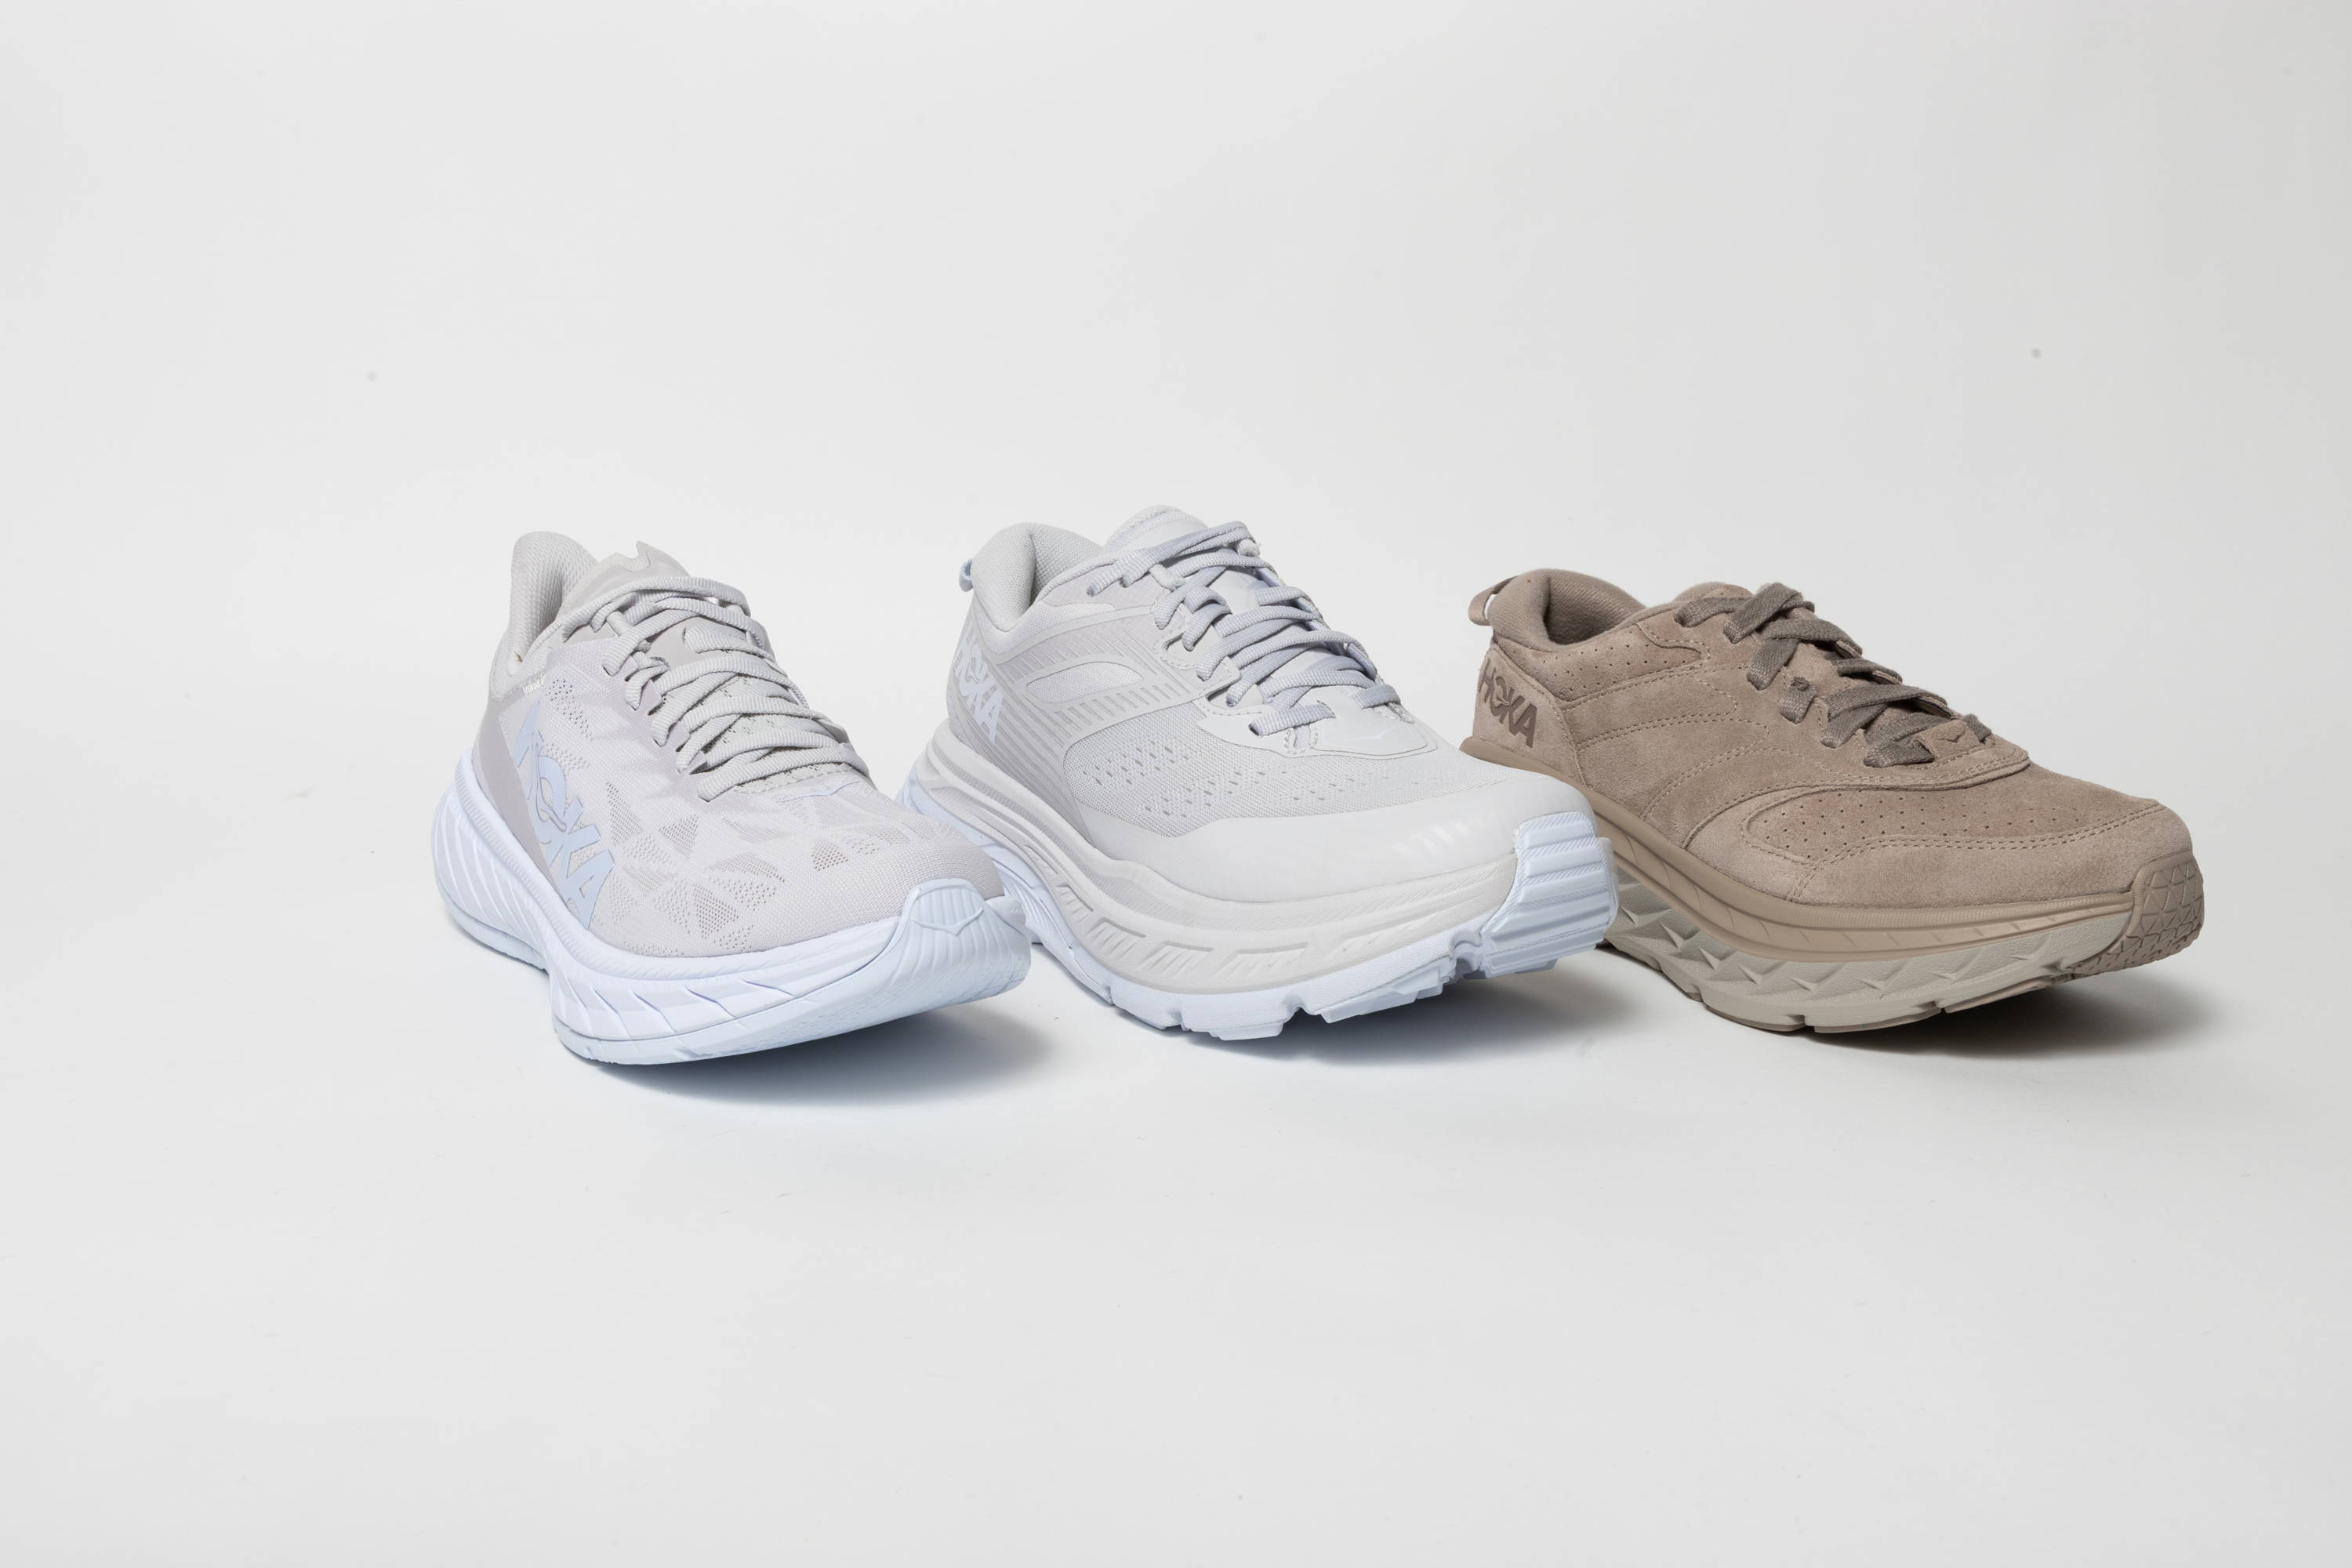 hoka one one ss21 lifestyle collection